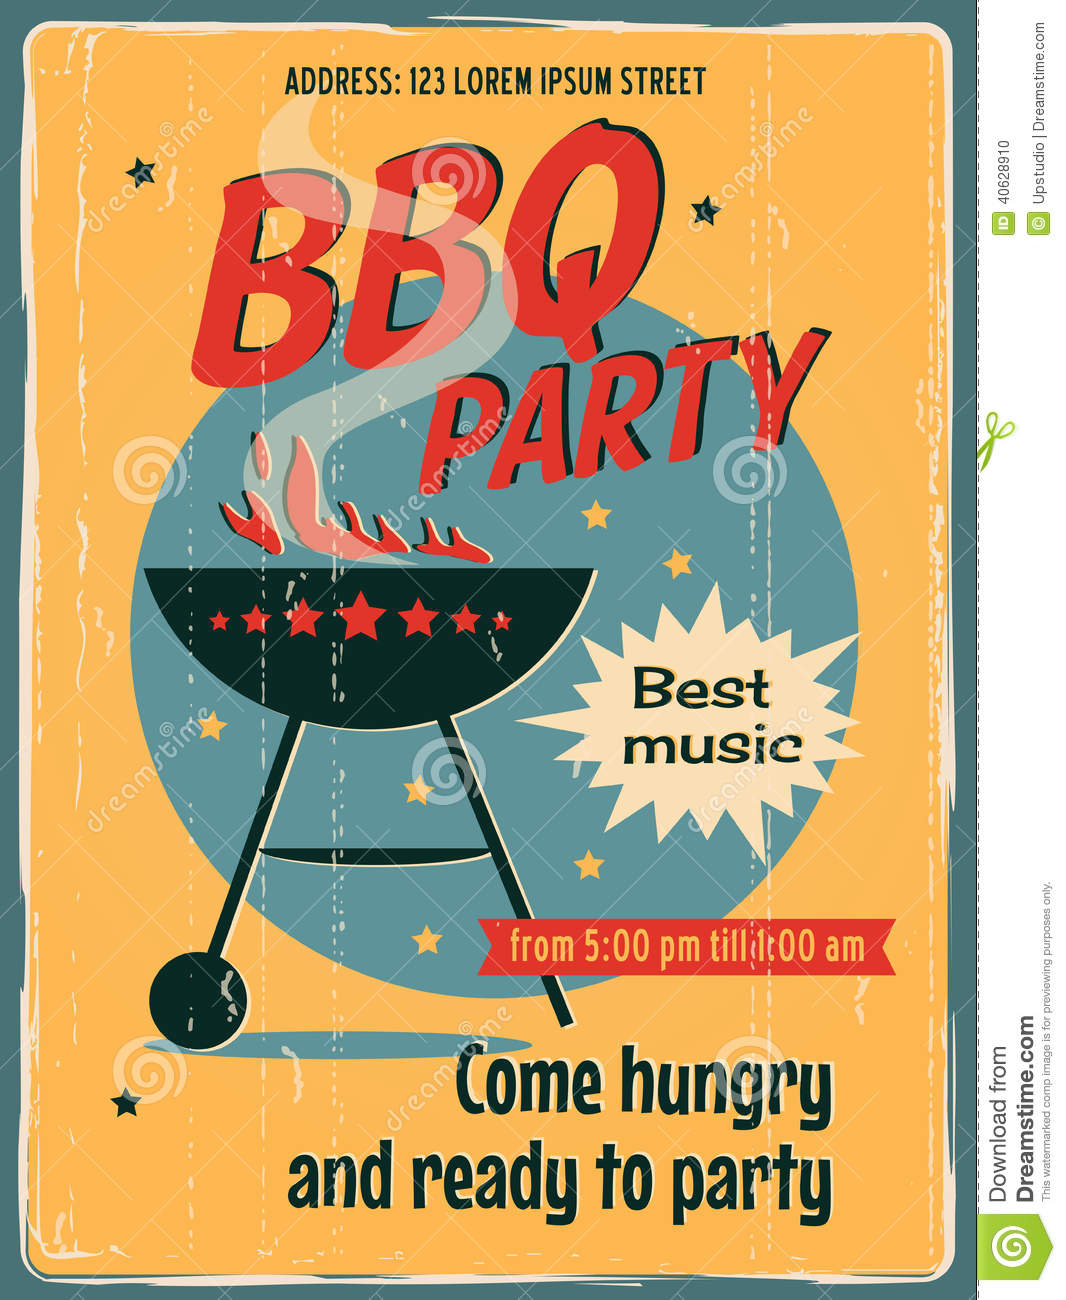 Vintage BBQ Grill Party Stock Vector Image 40628910